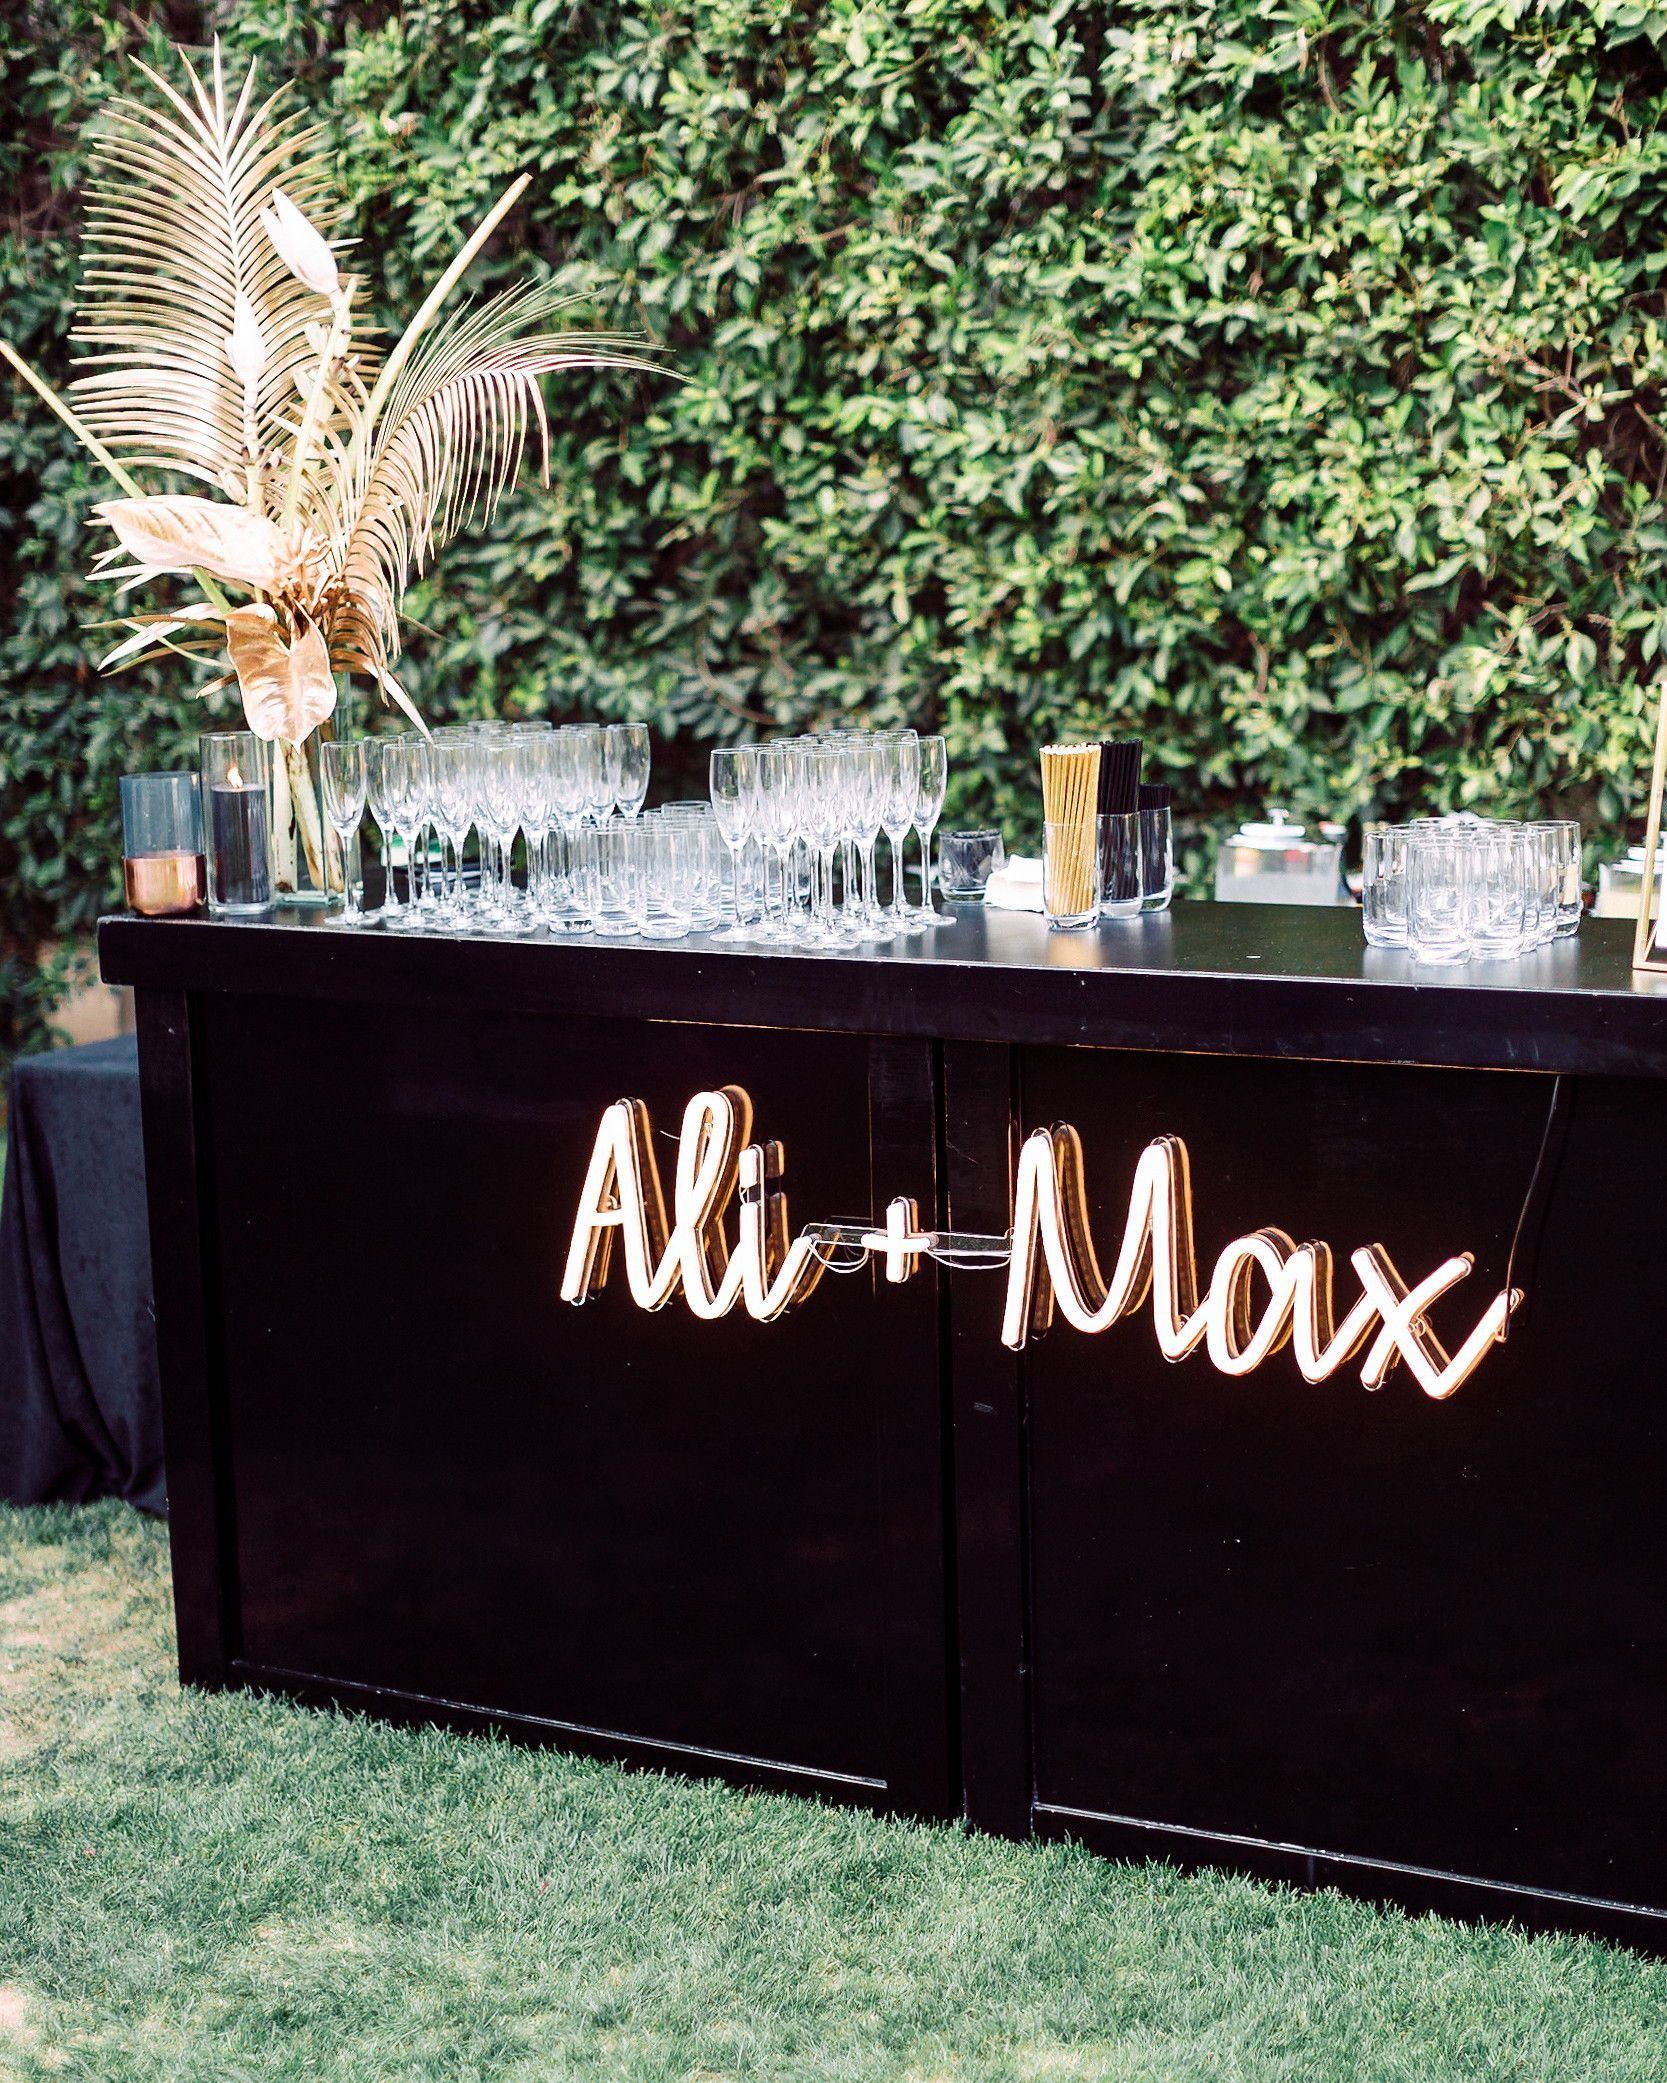 Customize your cocktail hour by hanging a neon sign (this one is by Echo Neon) that features your names on the front of your wedding bar. #Wedding #WeddingSigns #NeonSign #WeddingIdeas #Unique #Modern #WeddingTrends | Martha Stewart Weddings - 20 Ways to Use Neon Signs to Light Up Your Wedding #dream wedding 20 Ways to Use Neon Signs to Light Up Your Wedding